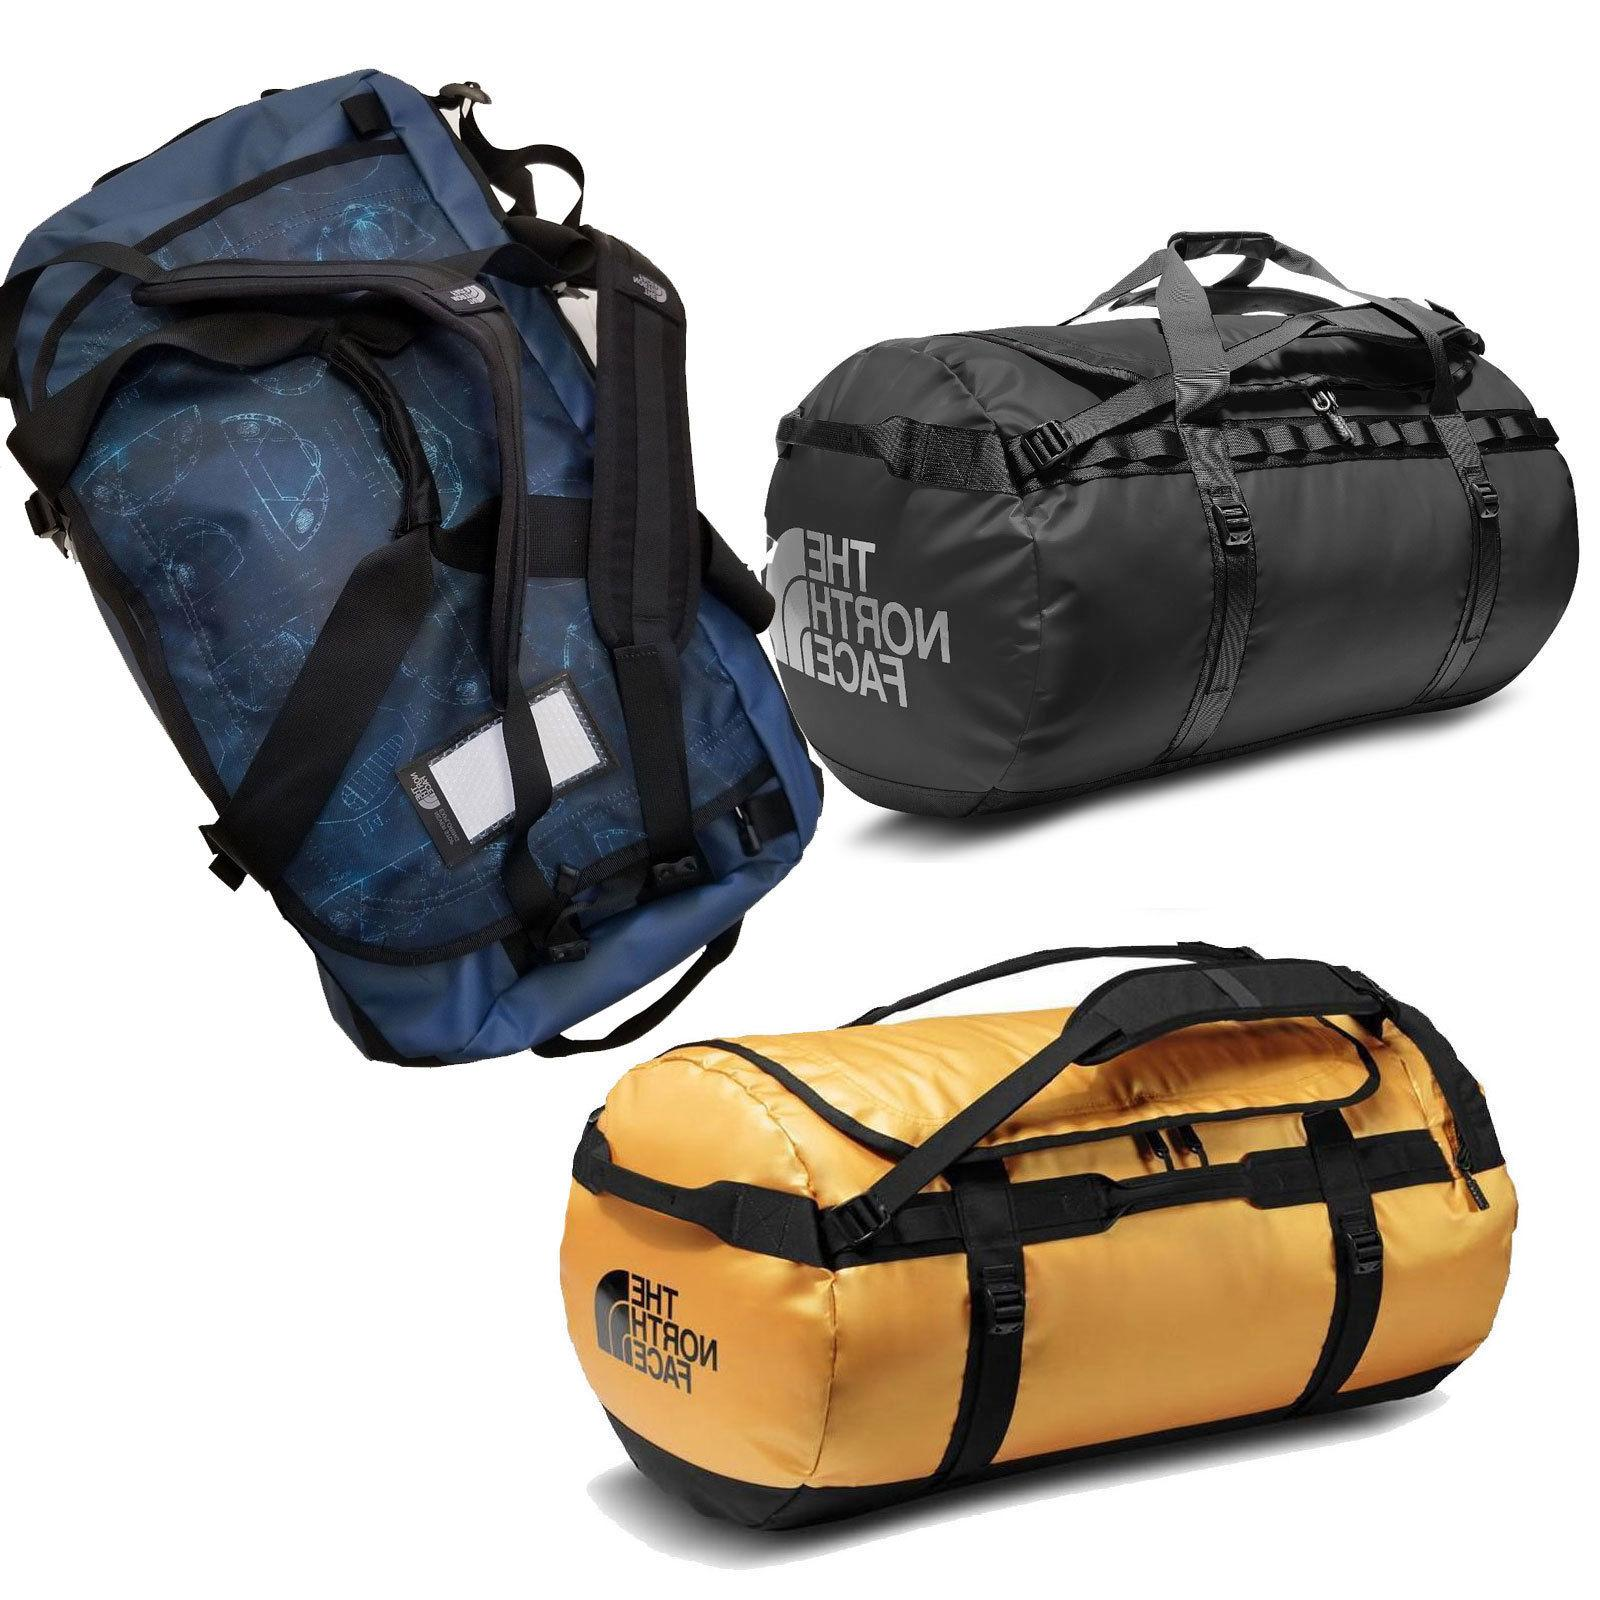 NEW The North Face TNF Base Camp Duffel Travel Luggage Bag G